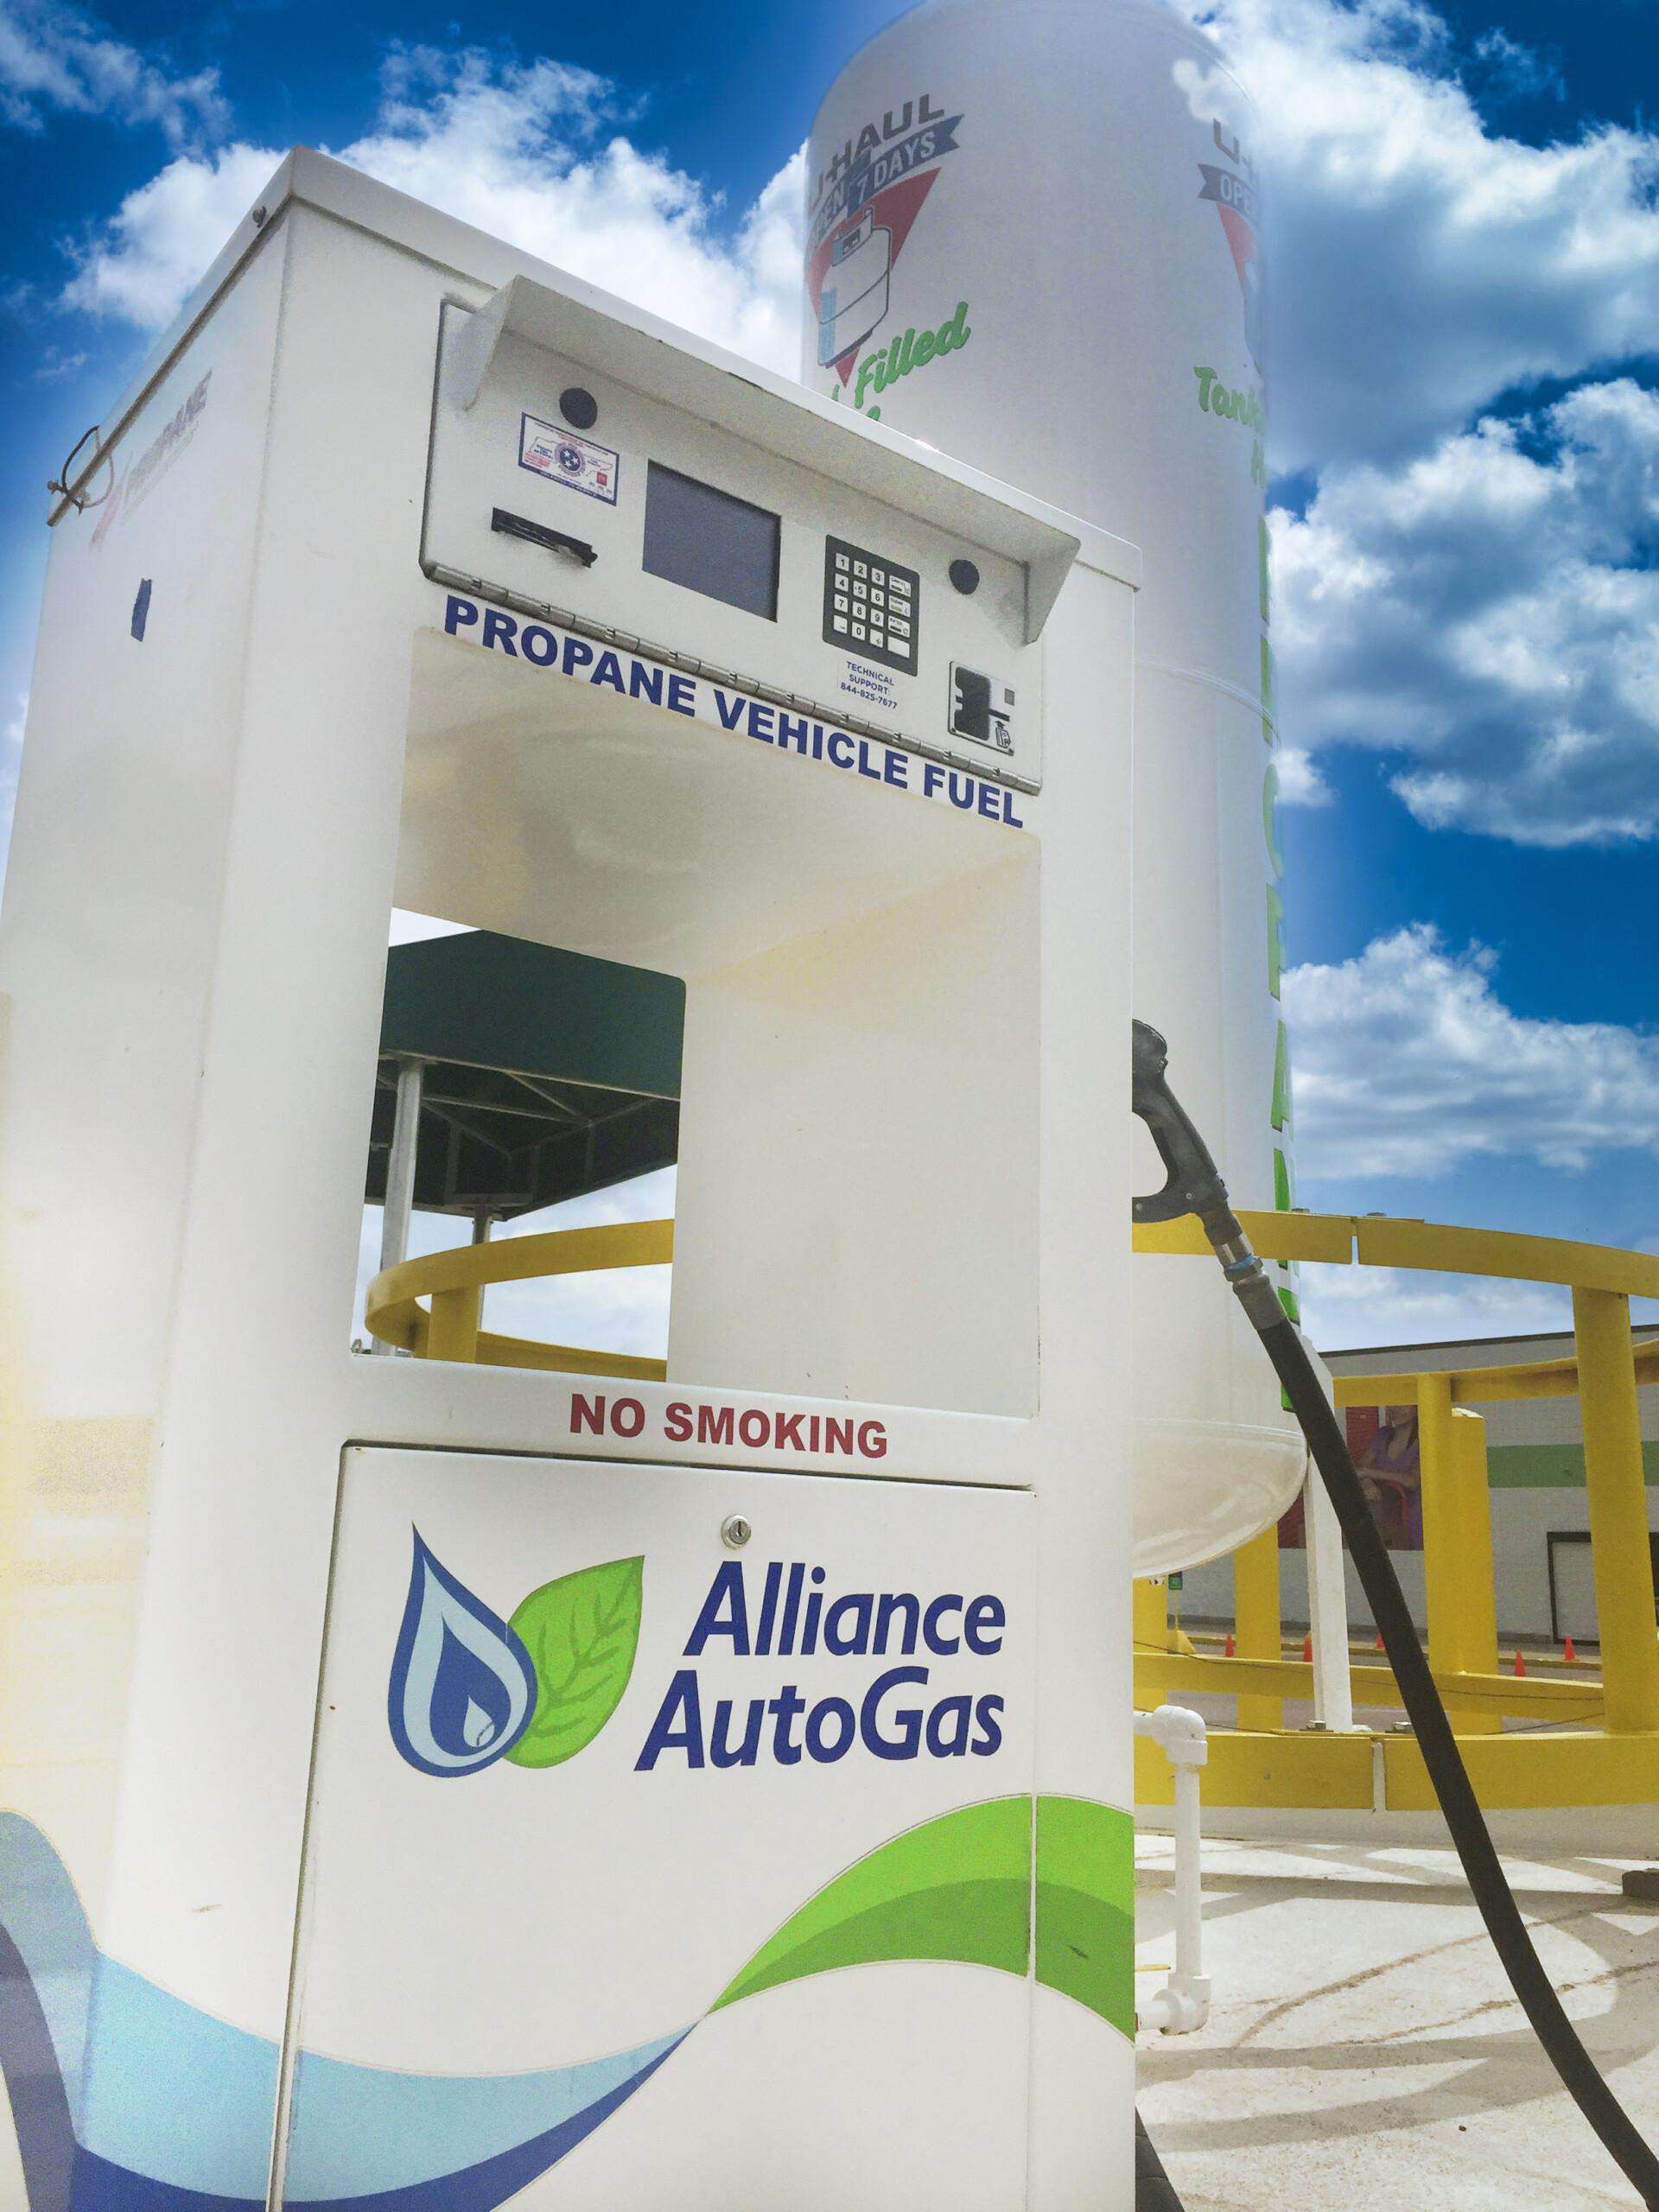 Alliance AutoGas propane vehicle refueling station at U-Haul facility